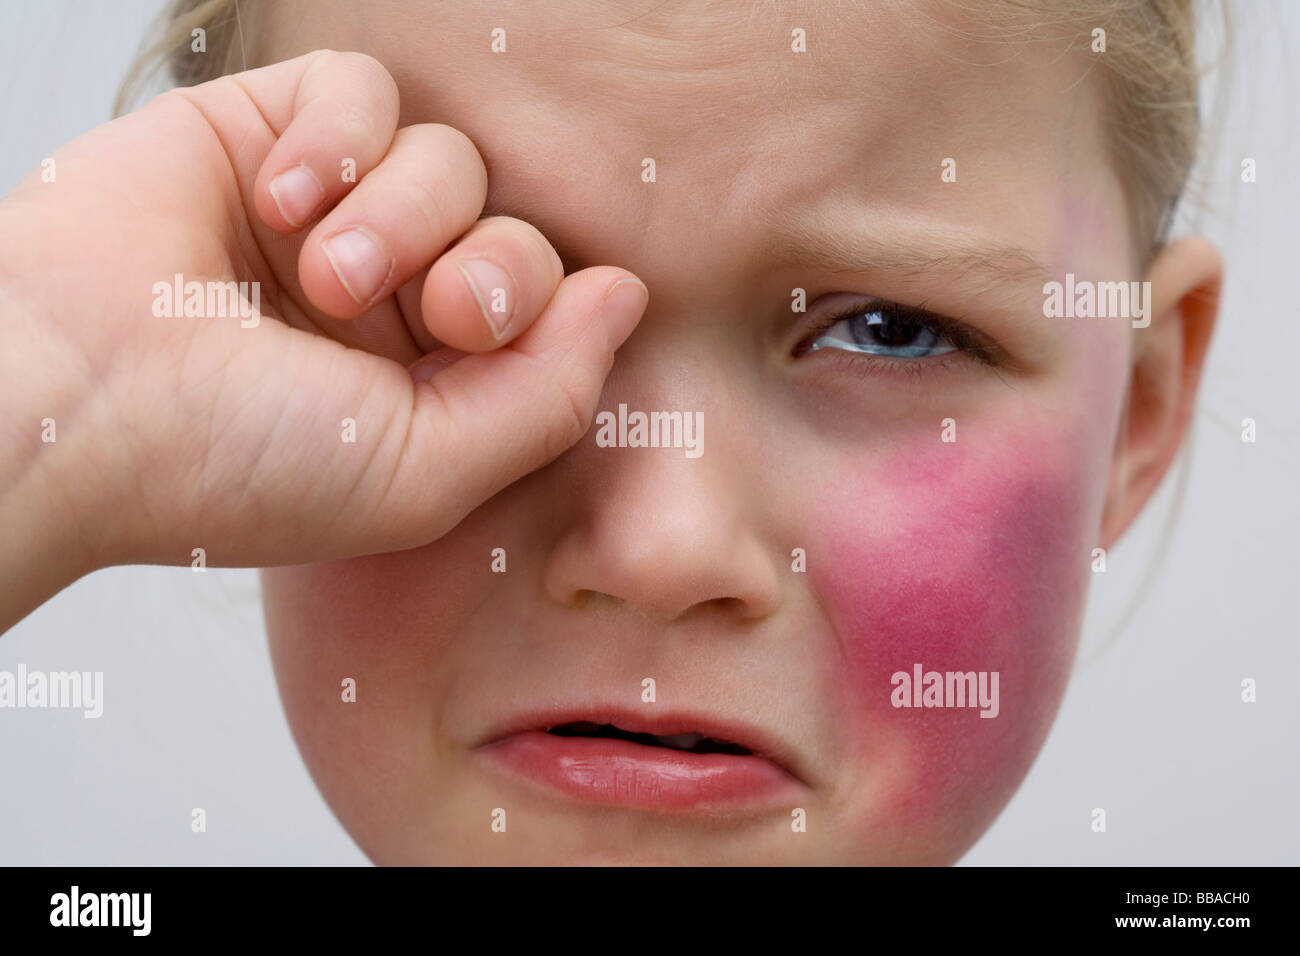 A little girl with a bruise on her cheek crying Stock ...